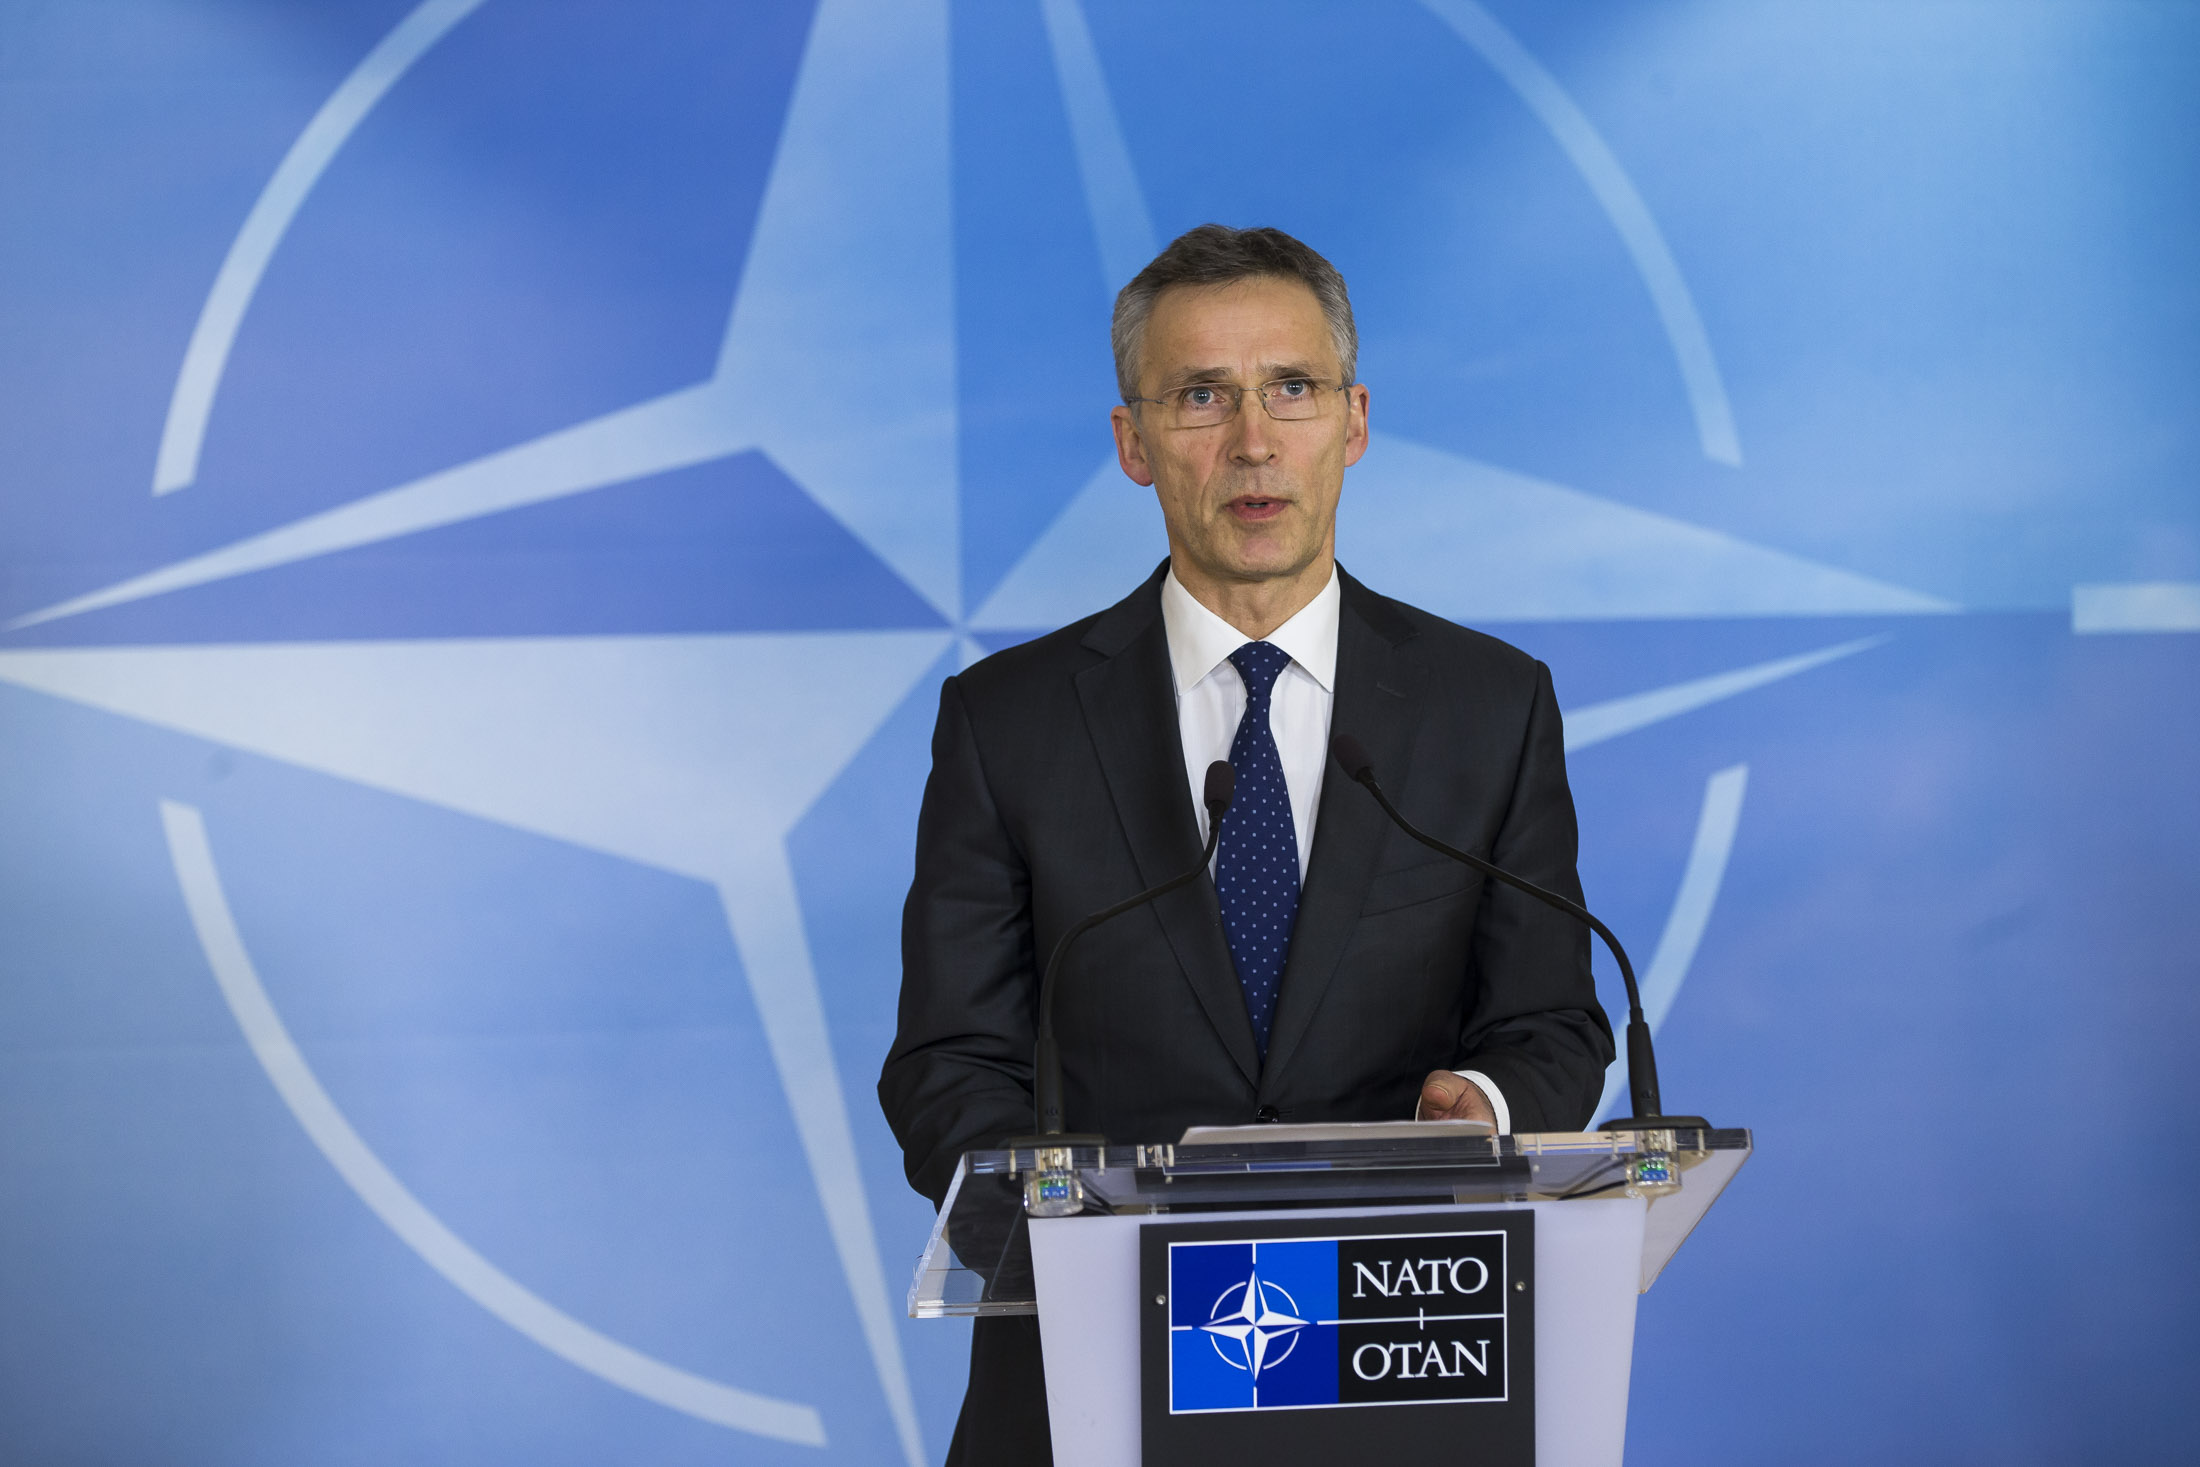 Press conference by NATO Secretary General Jens Stoltenberg following the meeting of the North Atlantic Council at the level of Defence Ministers. Photo Source:http://www.nato.int/cps/en/natohq/photos_141353.htm